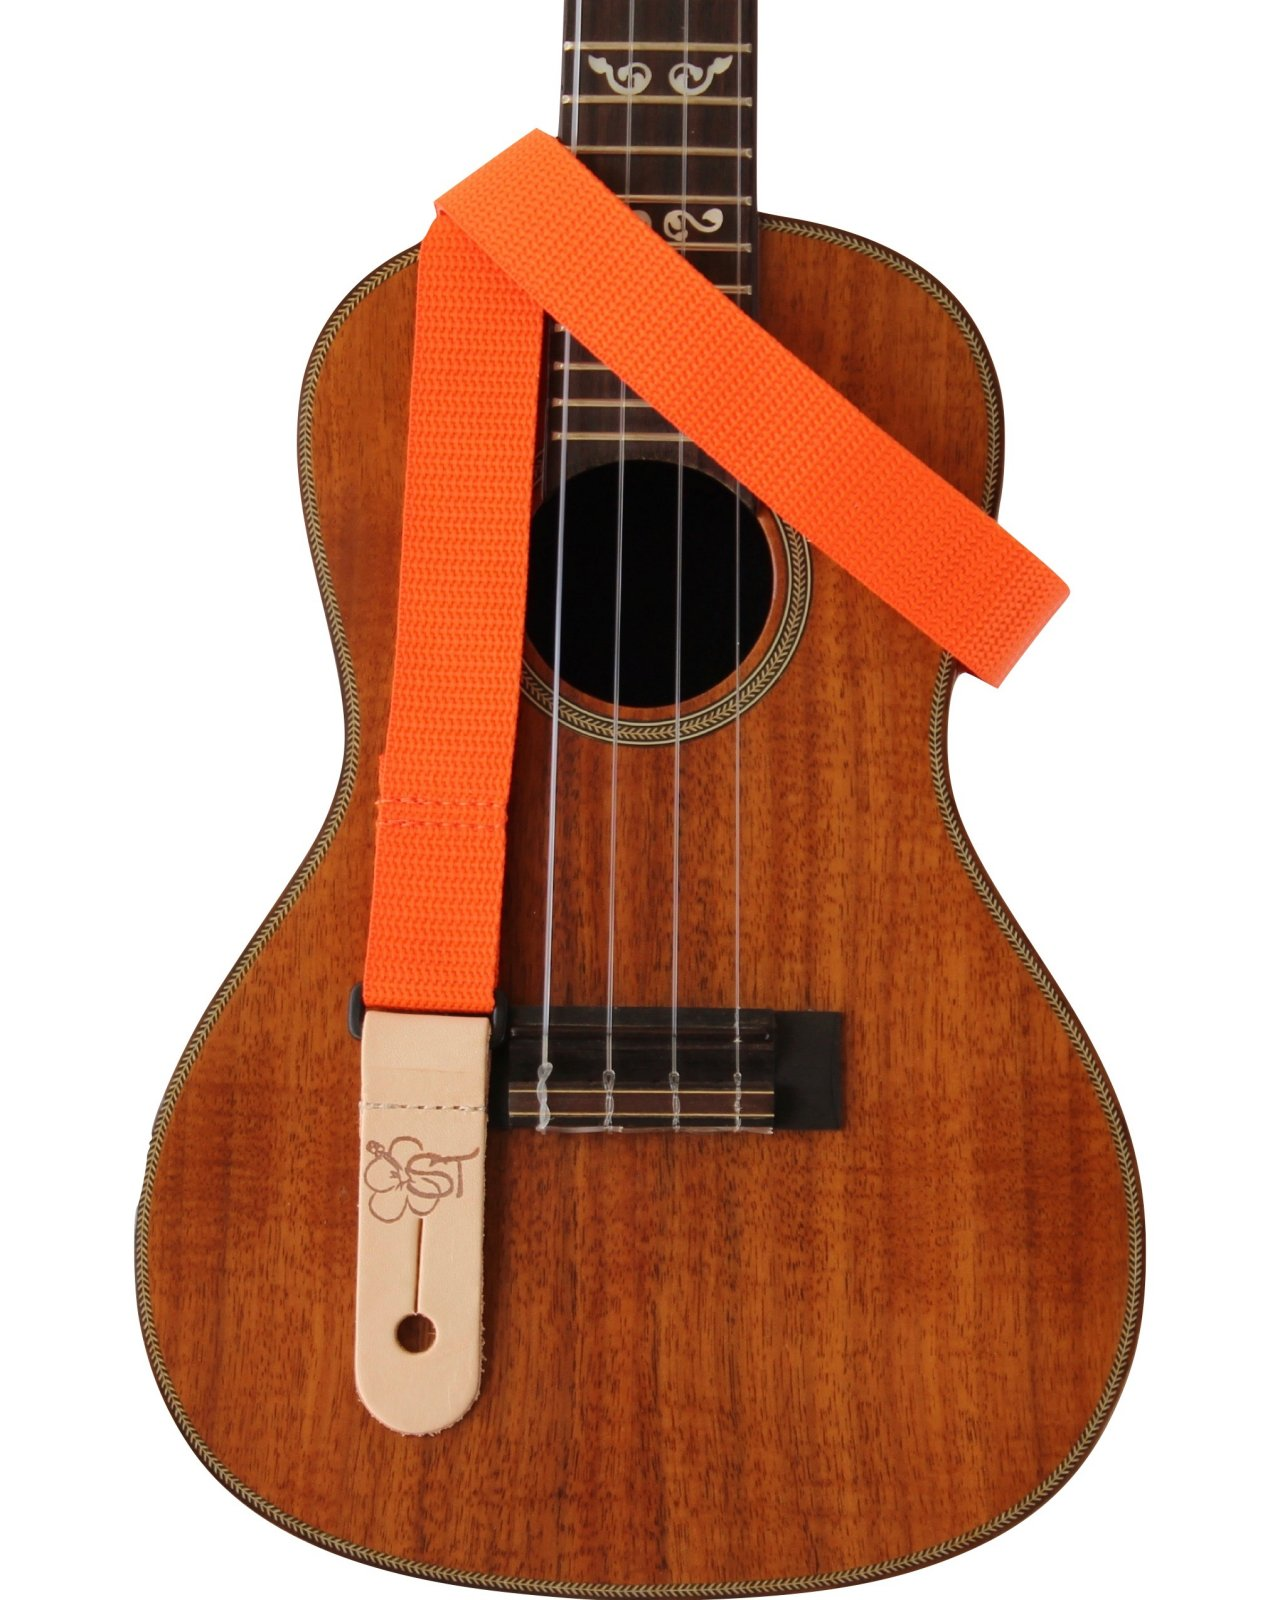 Sherrin's Threads 1 Orange Ukulele Strap